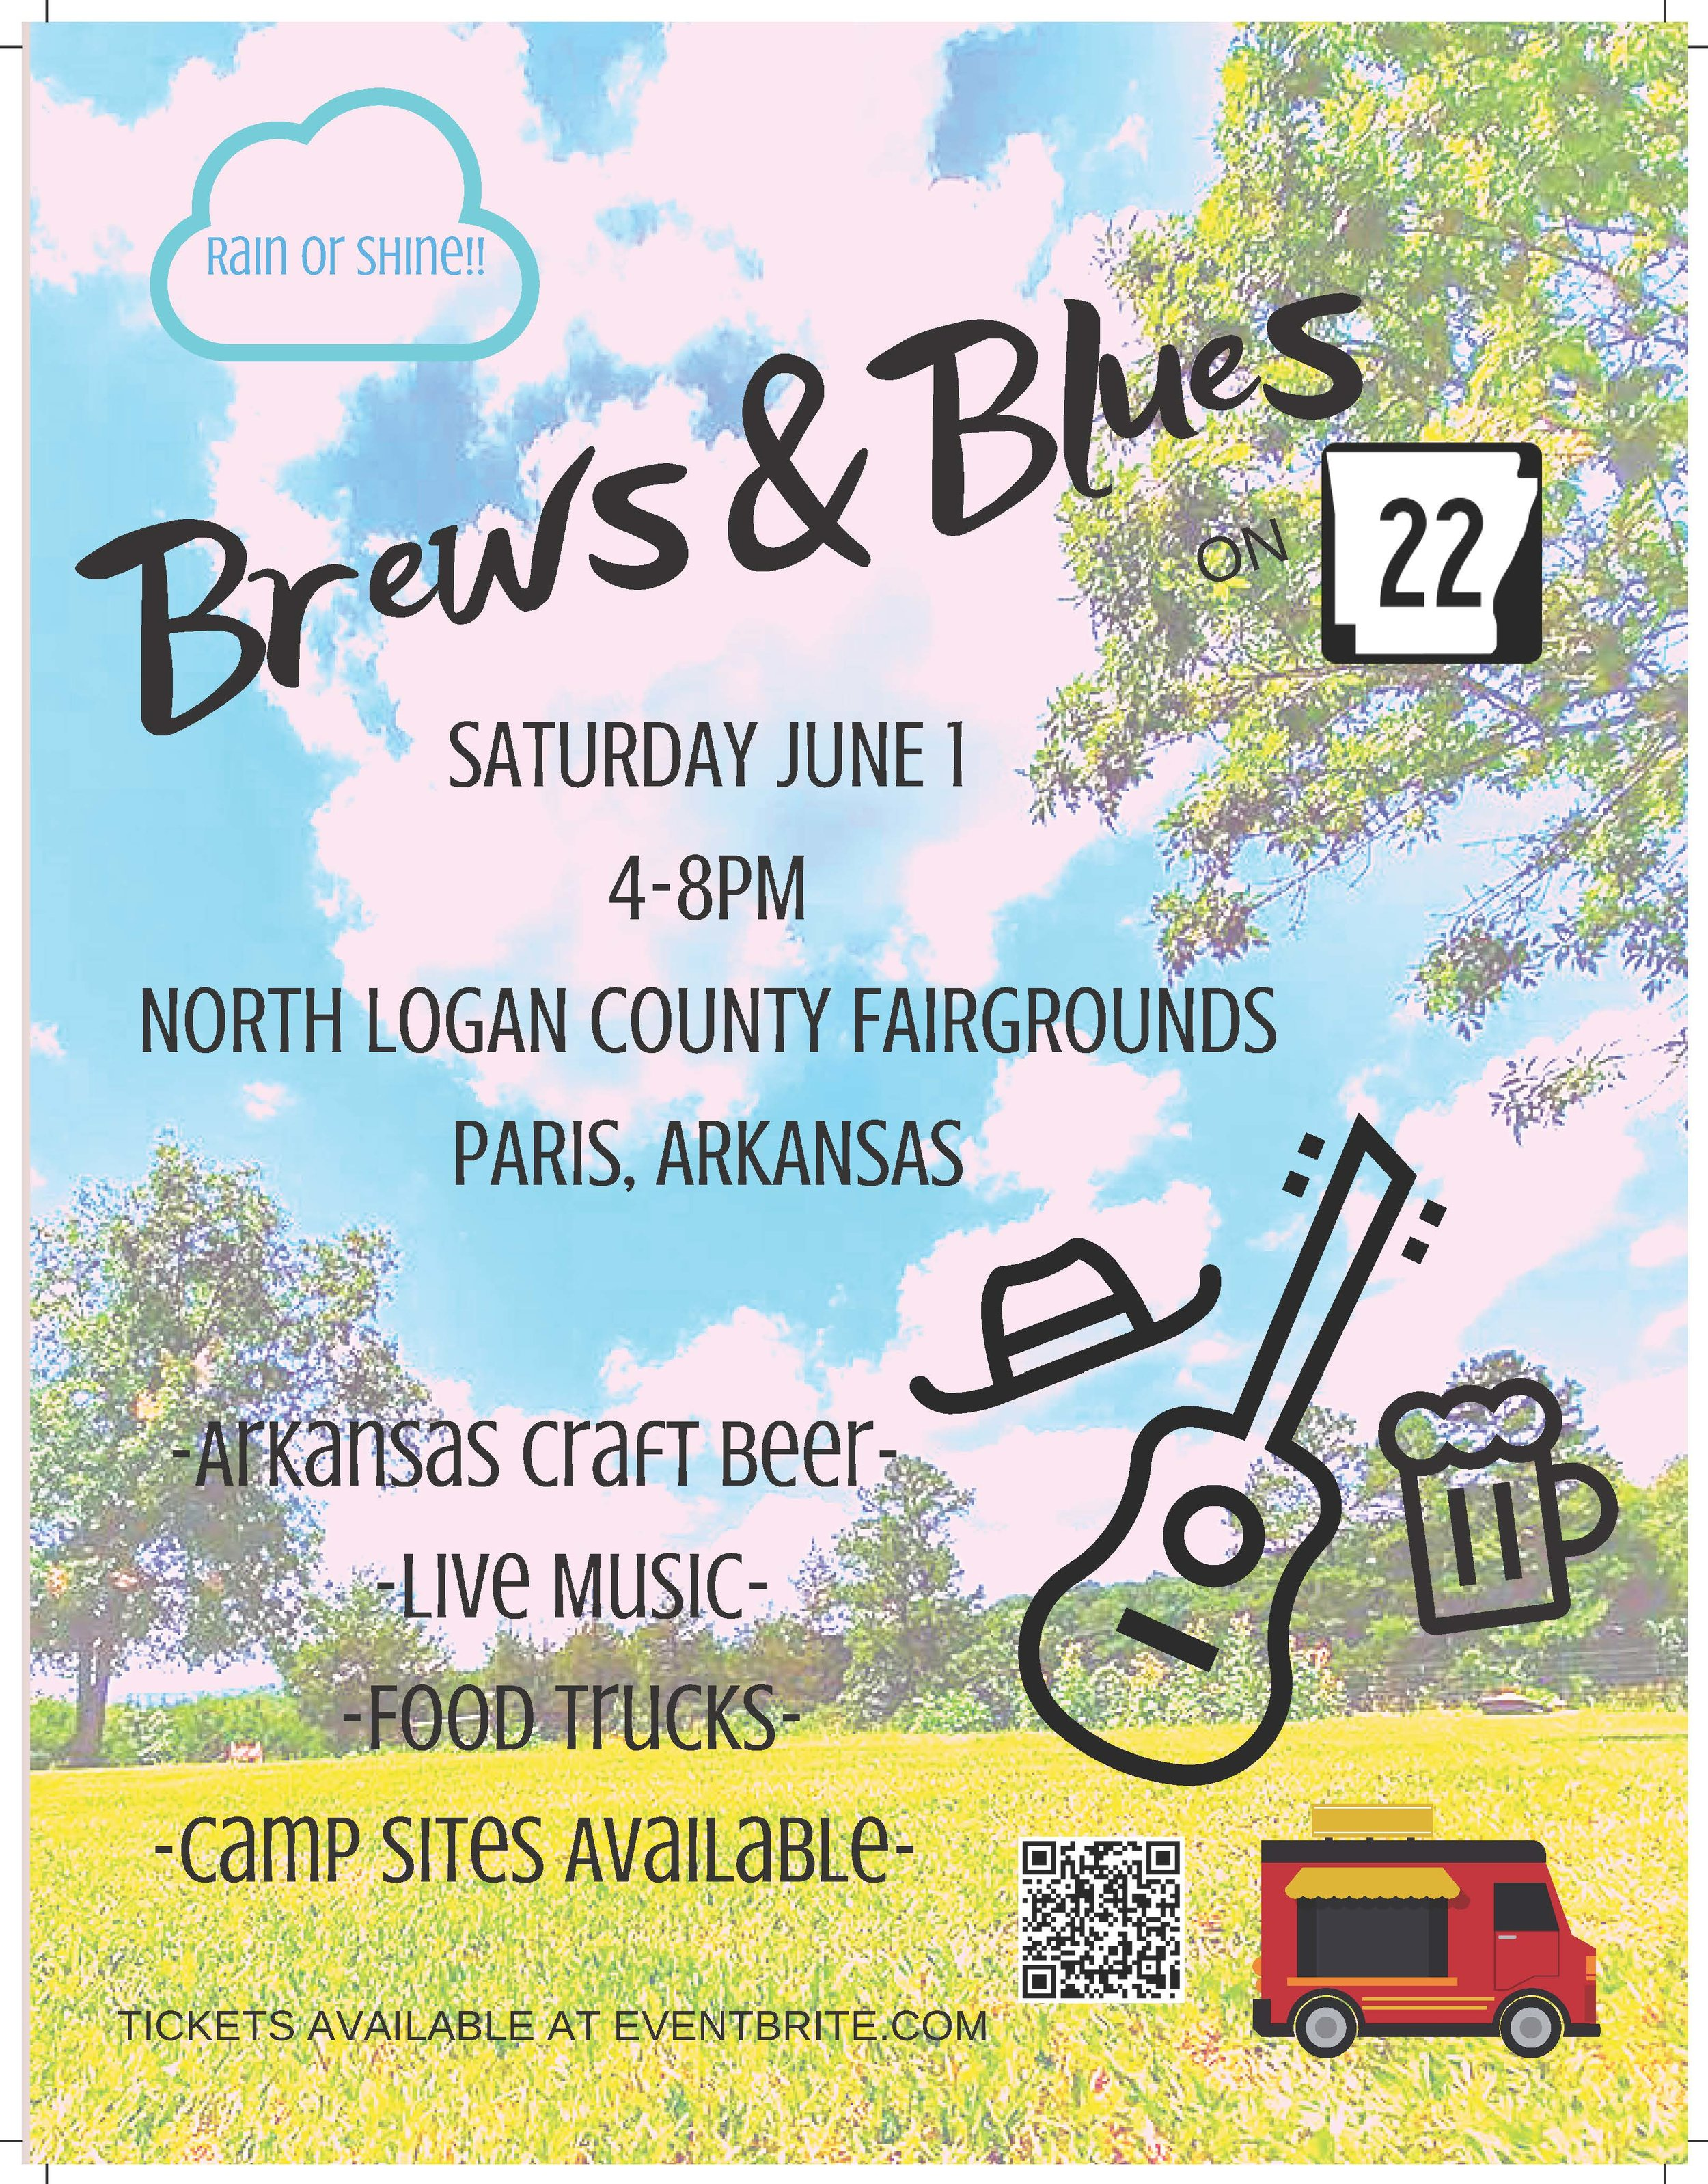 Brews & Blues flyer.jpg